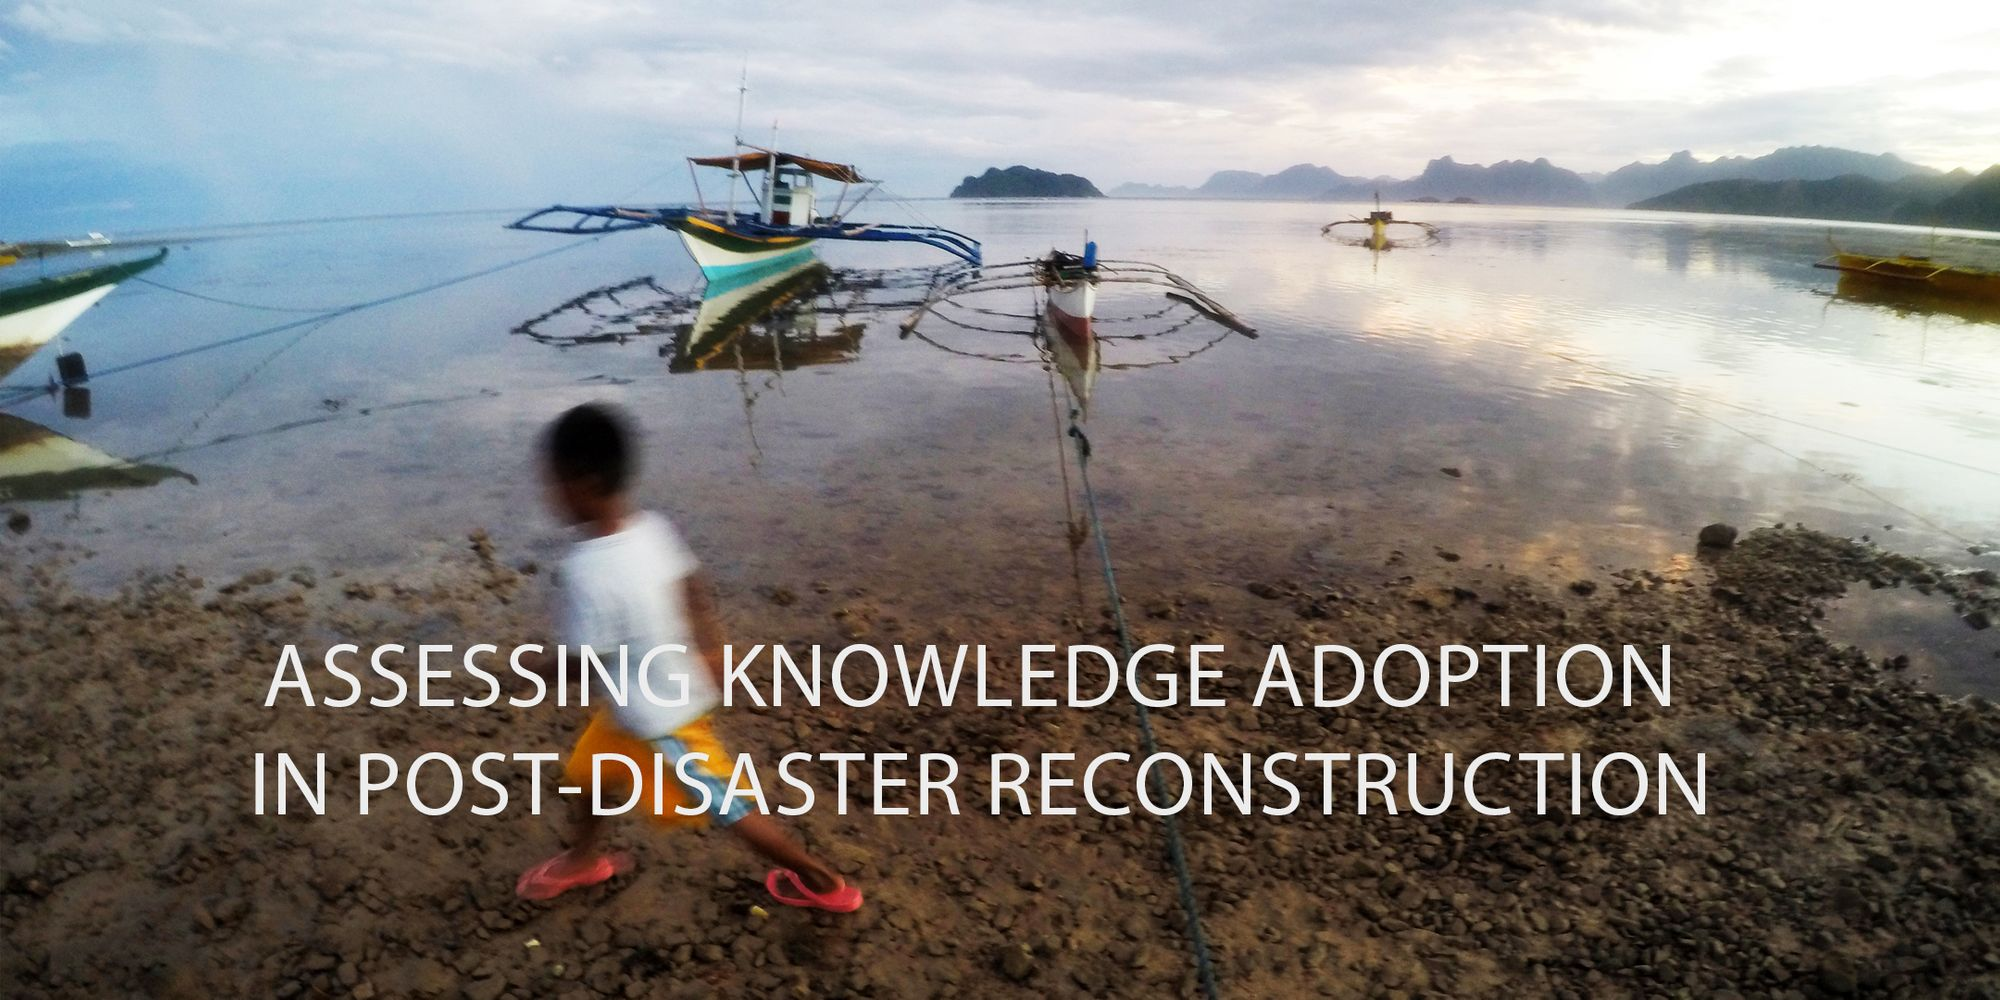 Building back better after disasters explained